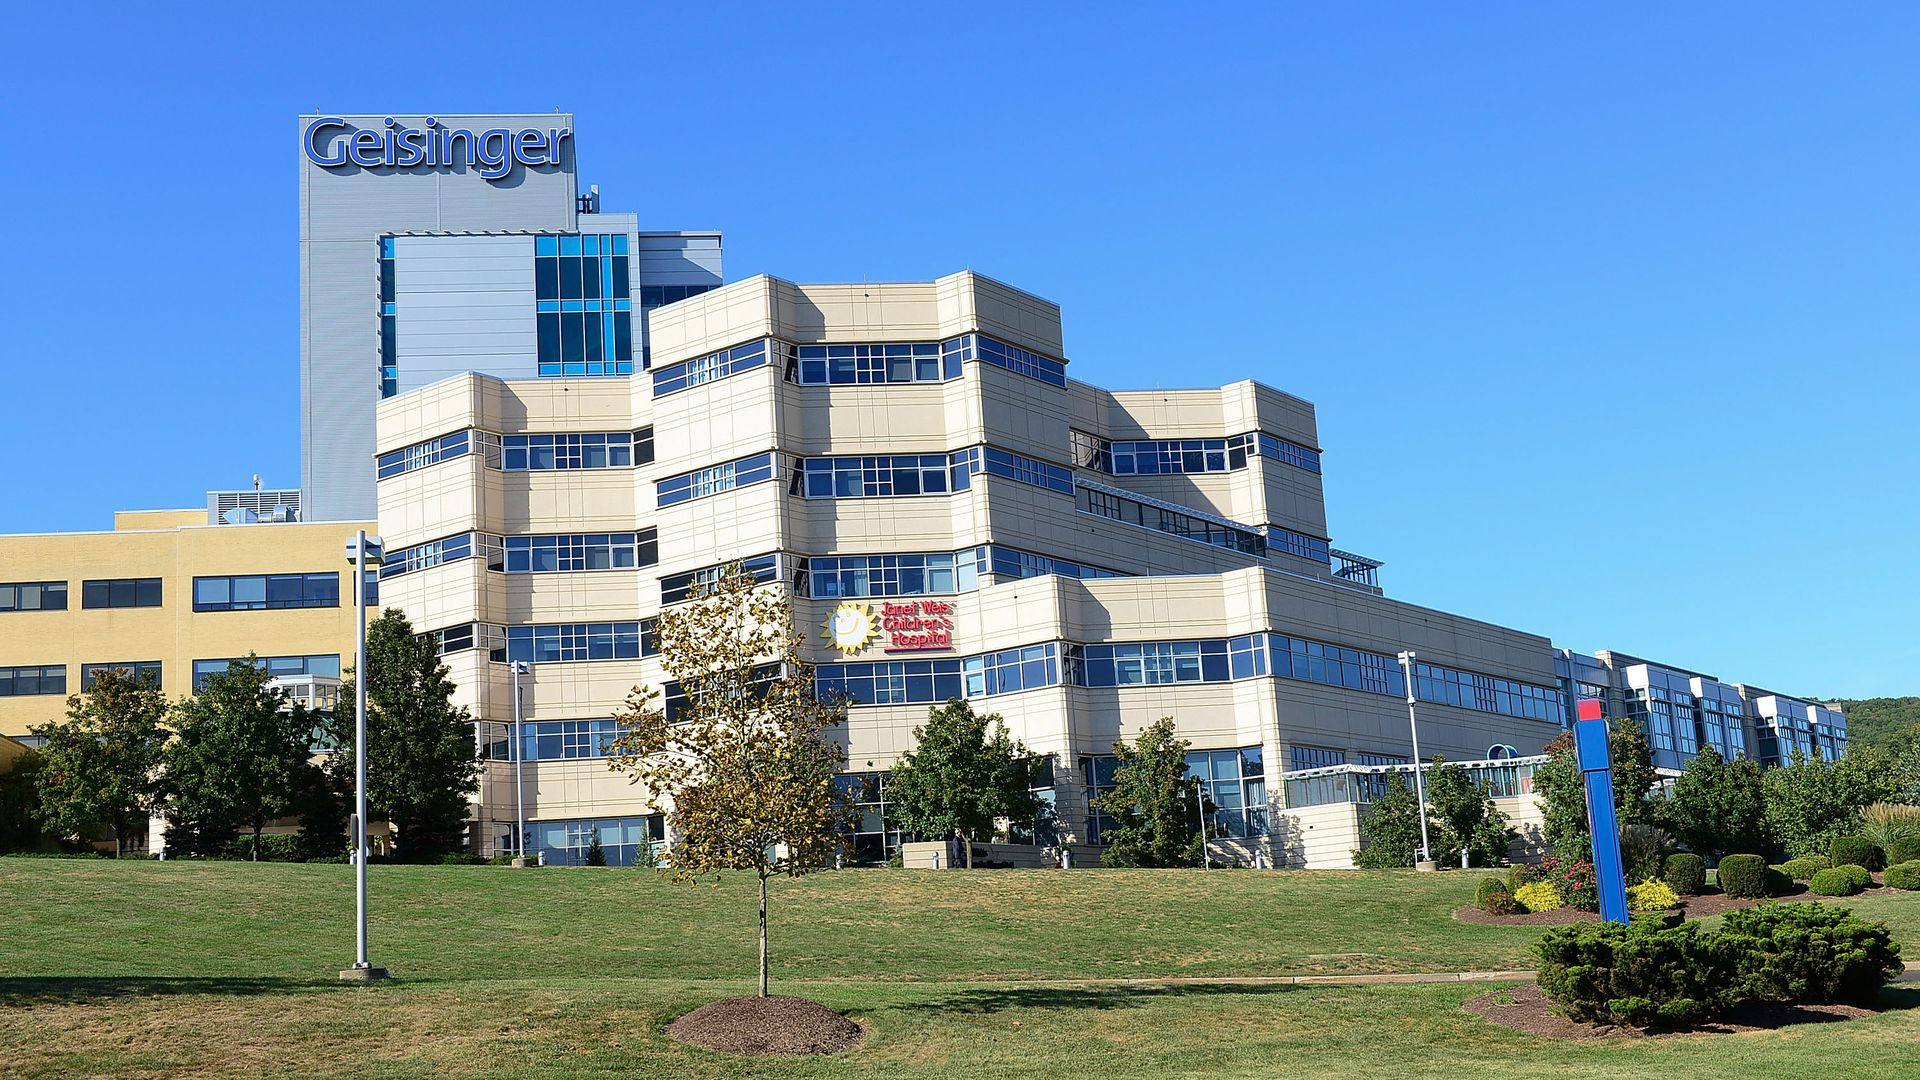 Geisinger Medical Center, a hospital, in Pennsylvania.